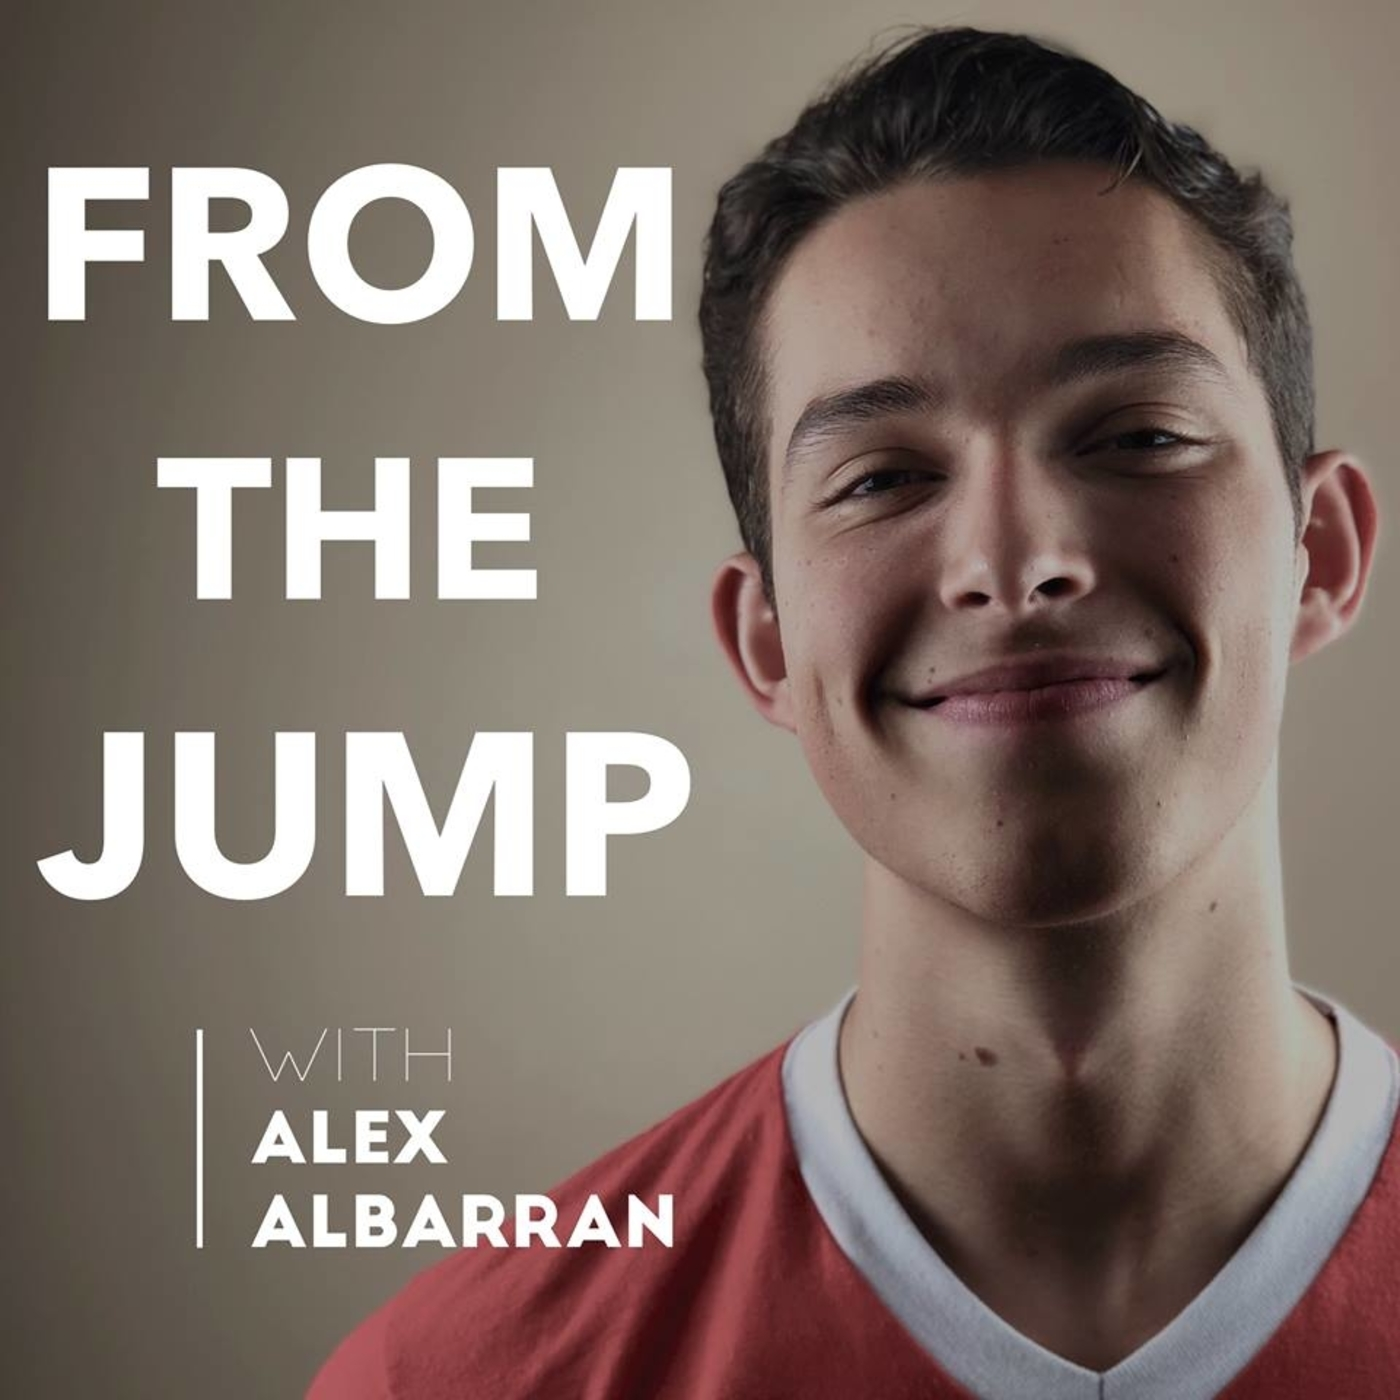 Fun little feature on From the Jump podcast with Alex Albarran, full of good advice for young entrepreneurs and anyone interested in the field of physical therapy. Have a listen  here  or click the image above!